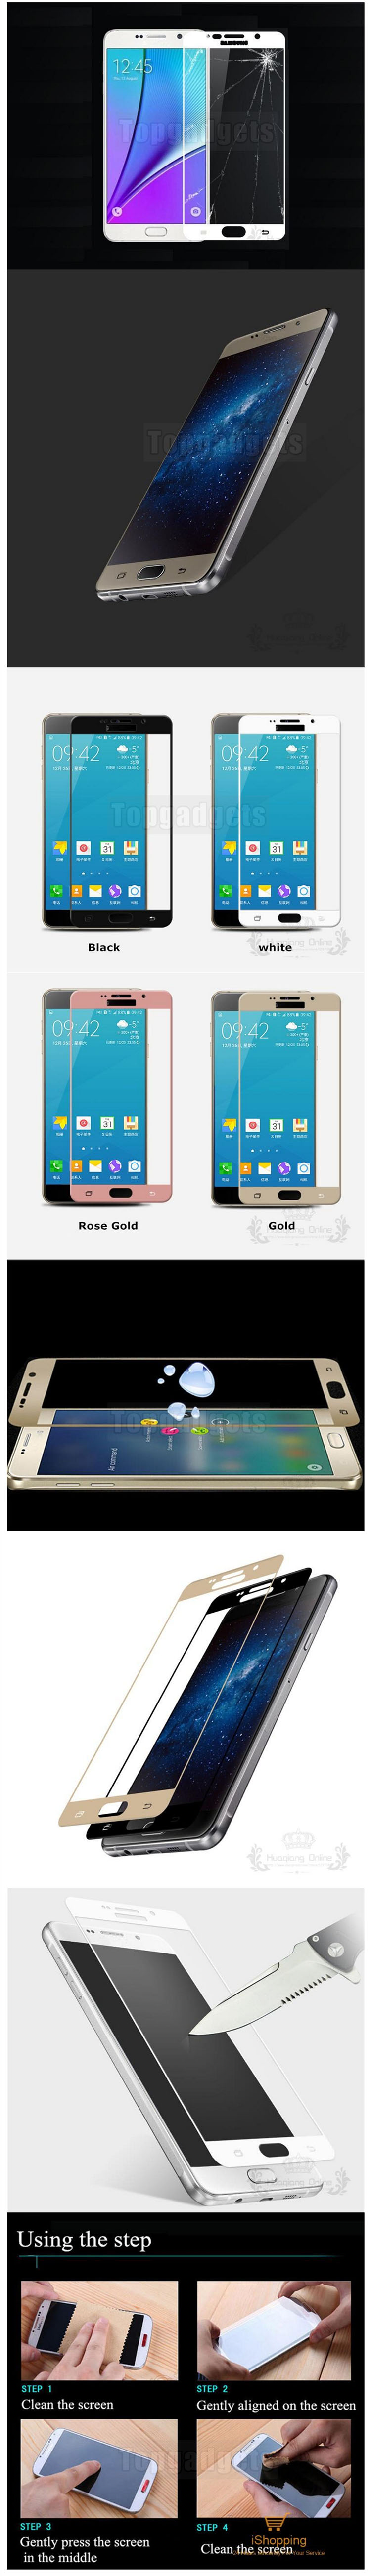 full cover tempered glass screen protector for samsung a3 a5 a7 a8 plus a9 2016 2017 2018. Black Bedroom Furniture Sets. Home Design Ideas